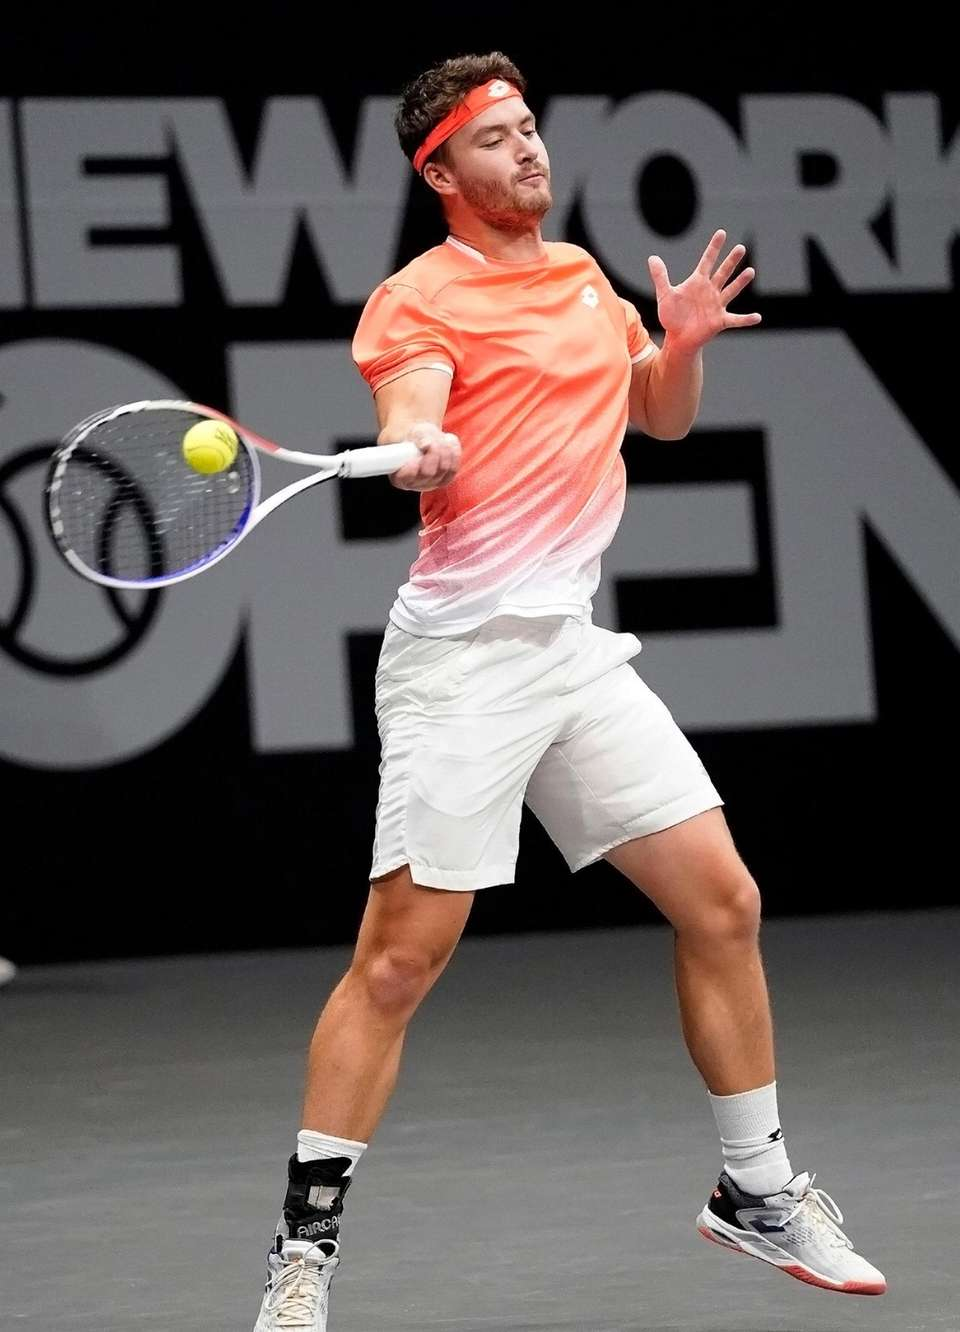 Jonny O'Mara with the forehand returnd in his